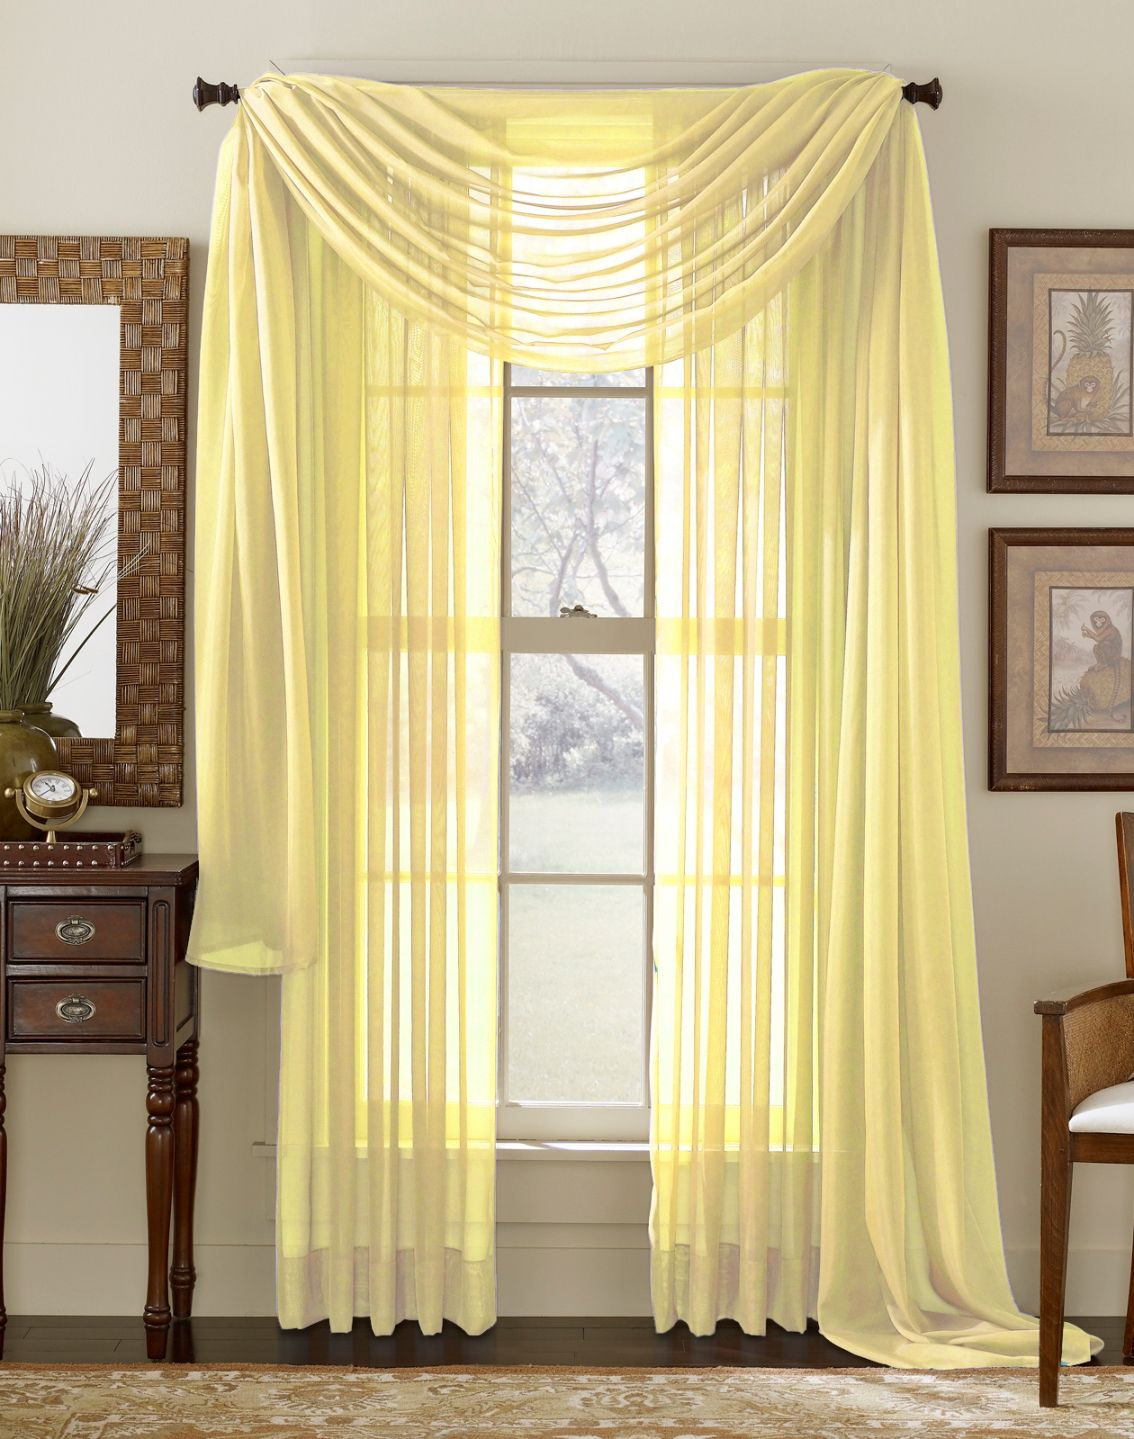 grommet cheap get curtains window quotations guides panels find bedinabag curtain mira shopping x white